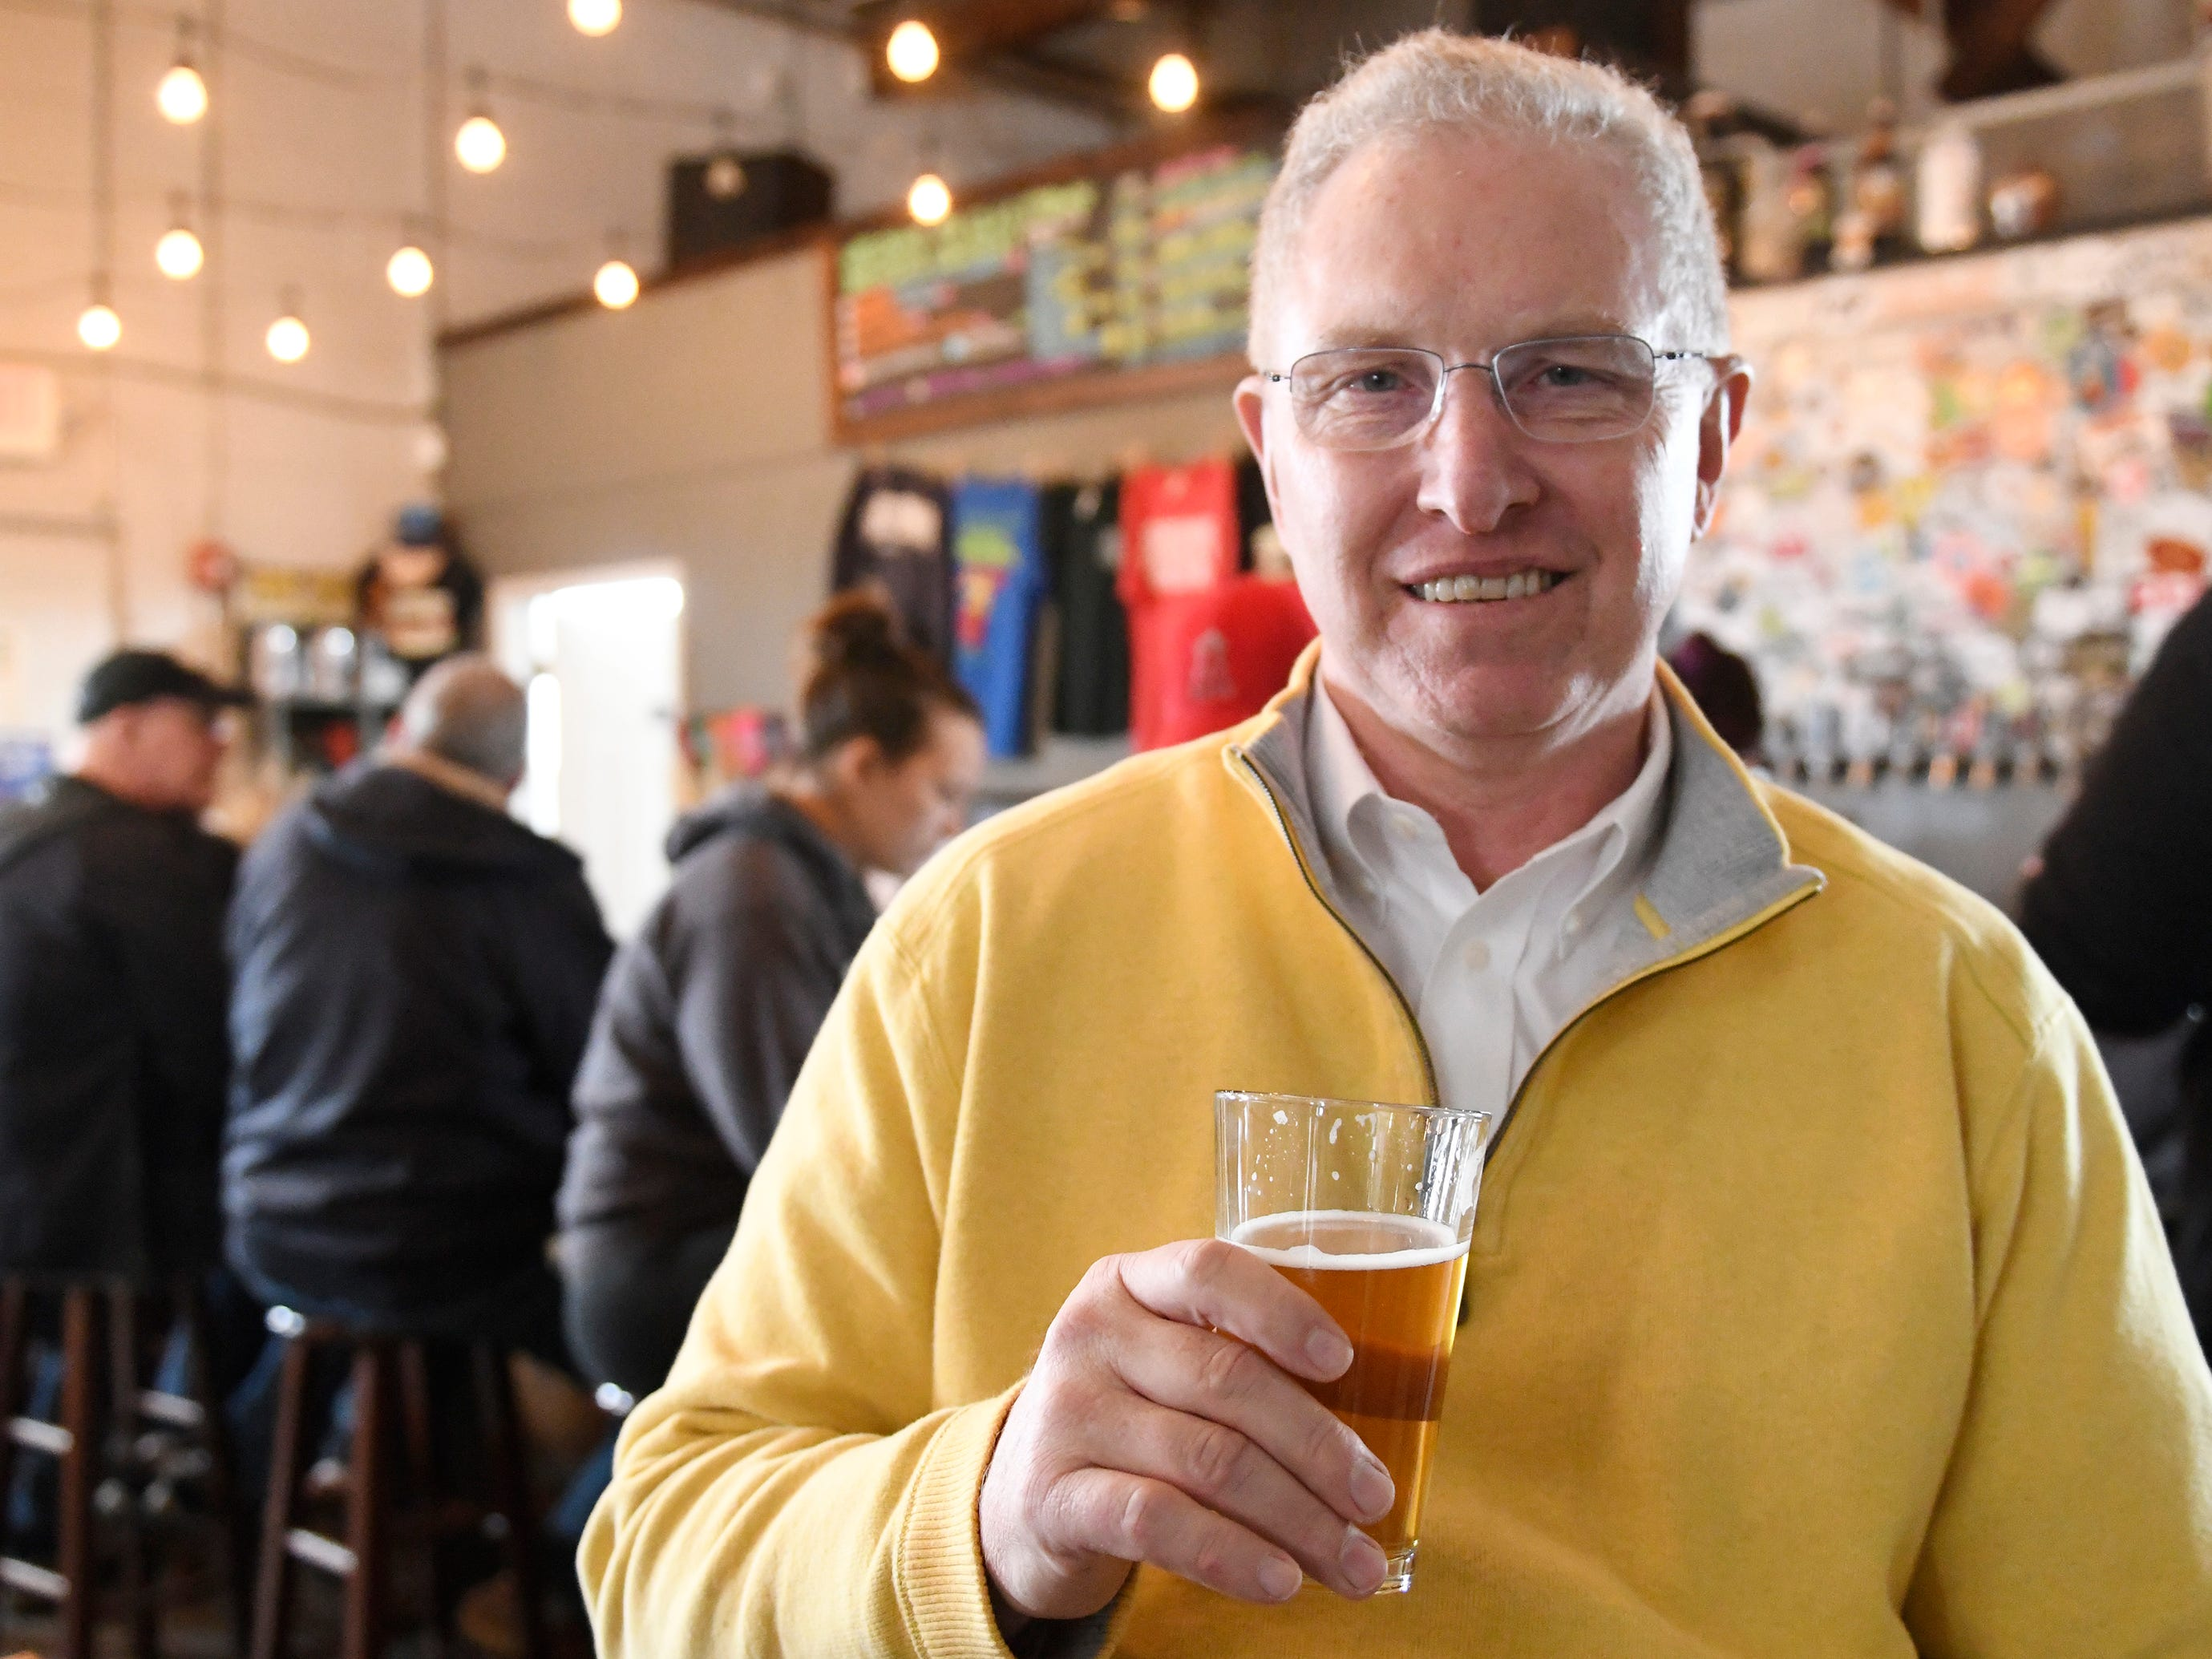 Roy Johnson, past president of the Master Brewers Association and Vineland native, visits the Glasstown Brewing Company in Millville on Friday, March 8, 2019.